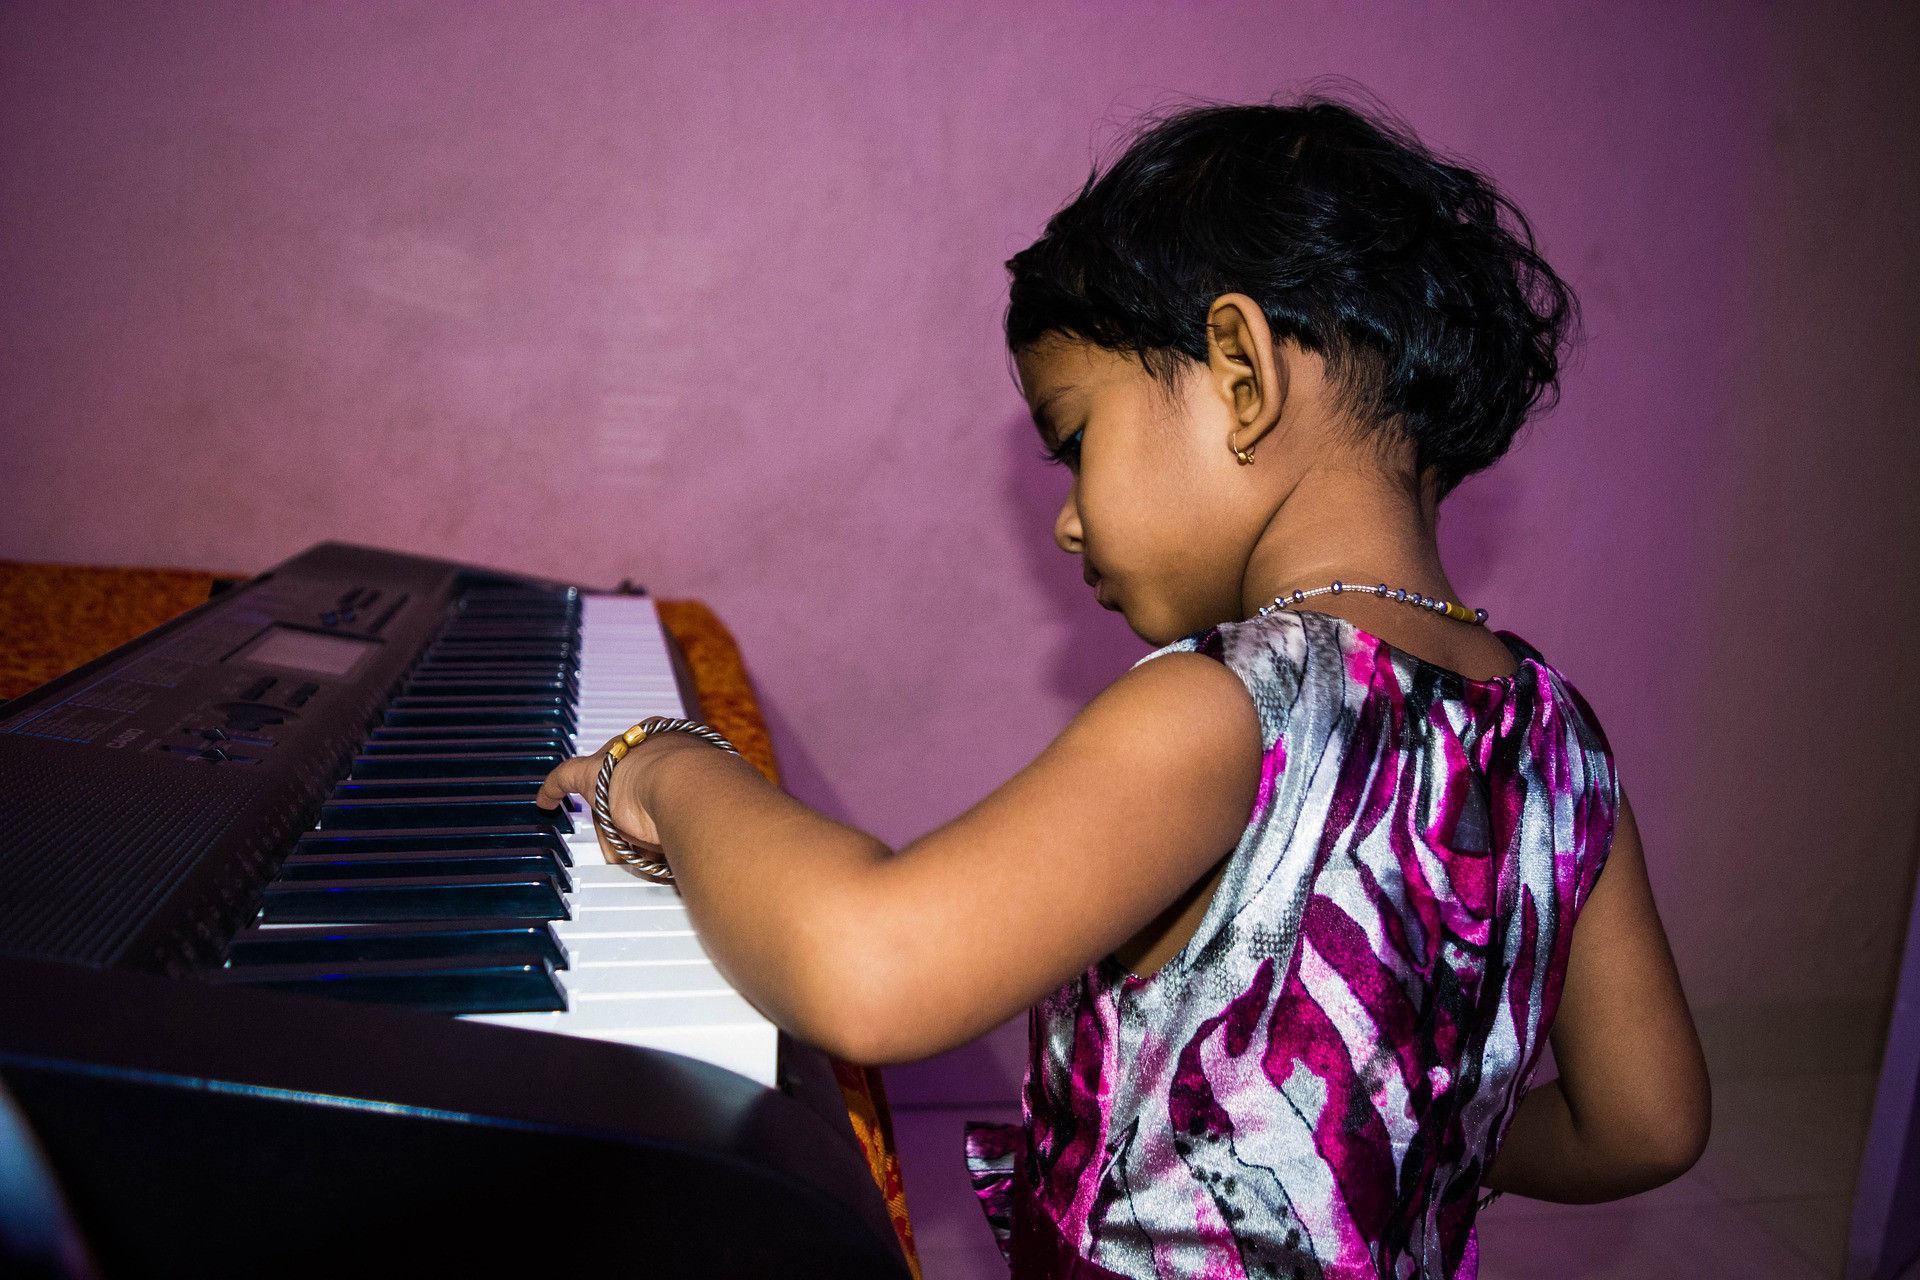 Cute child of color playing the piano